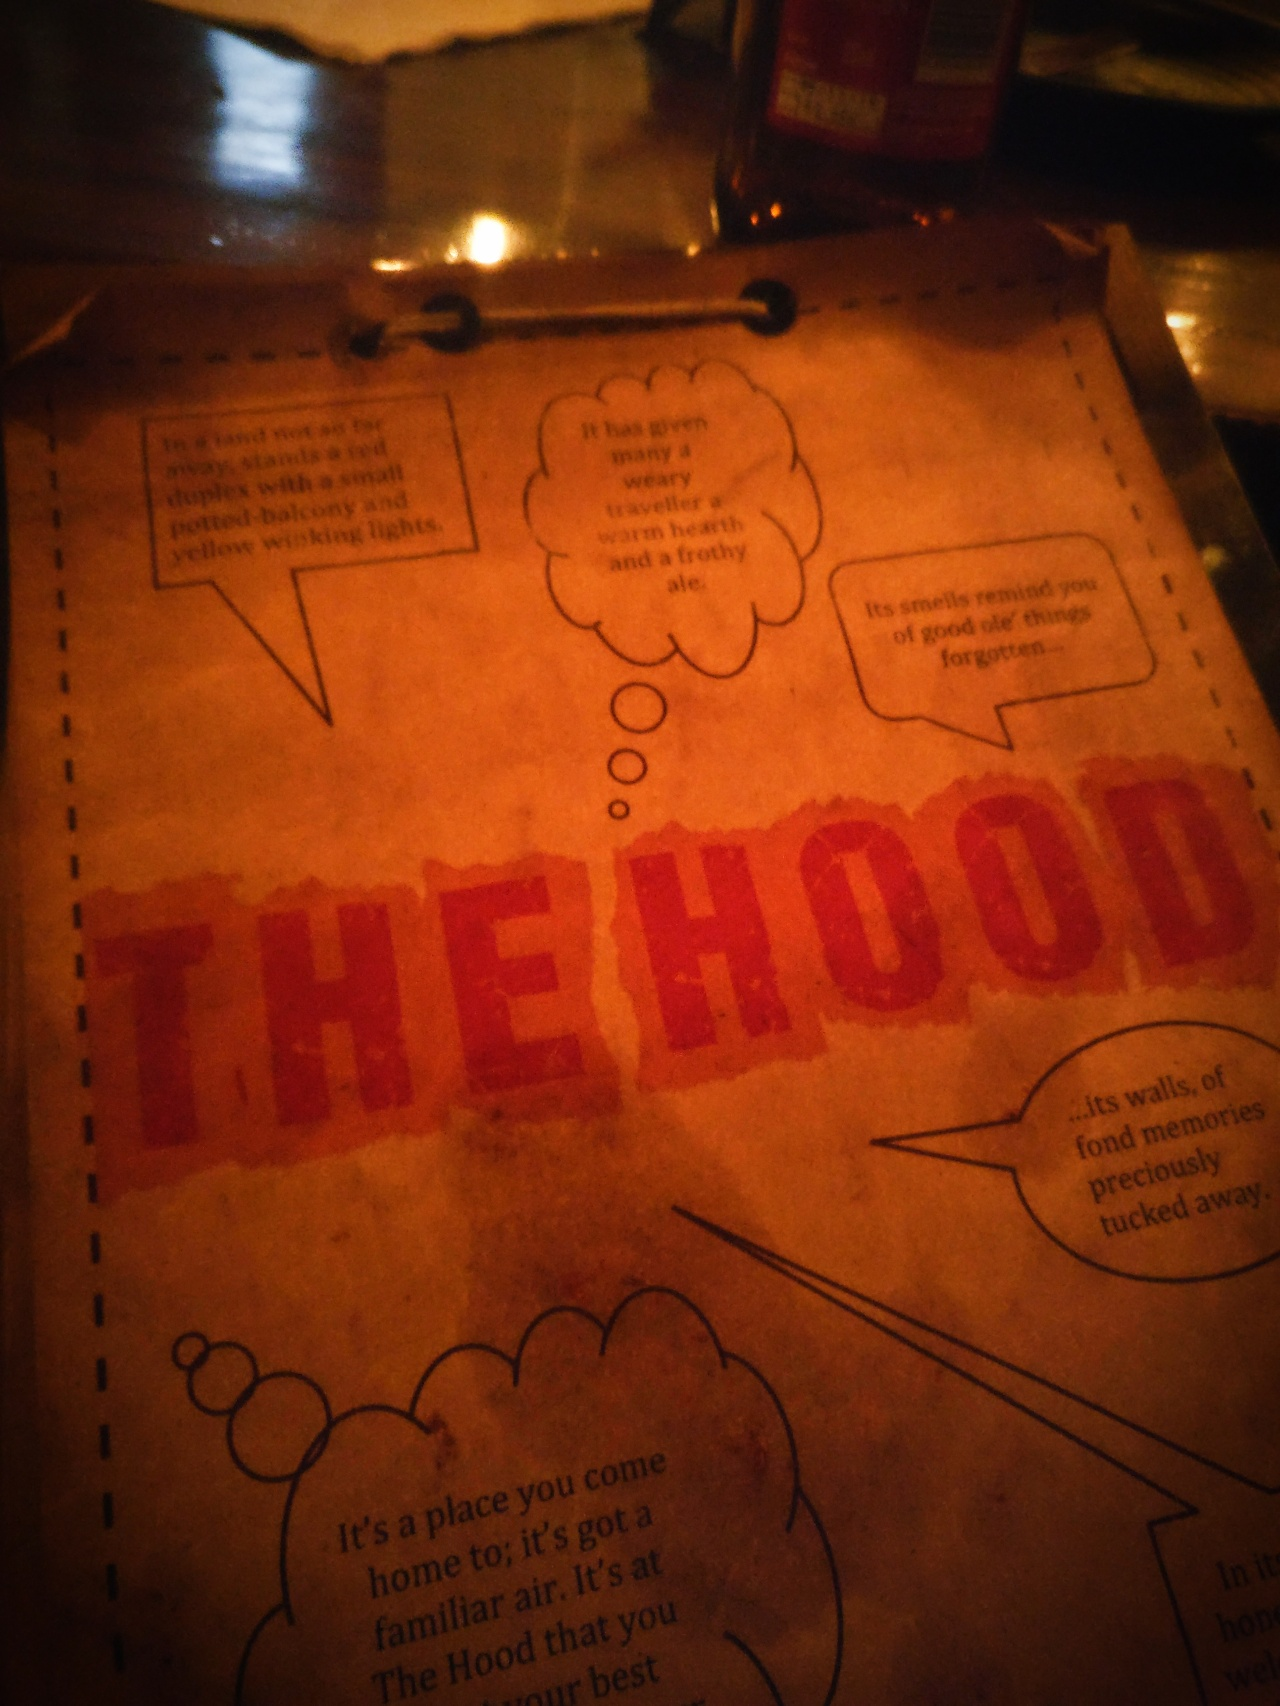 Malad's cool place to chill – THE HOOD